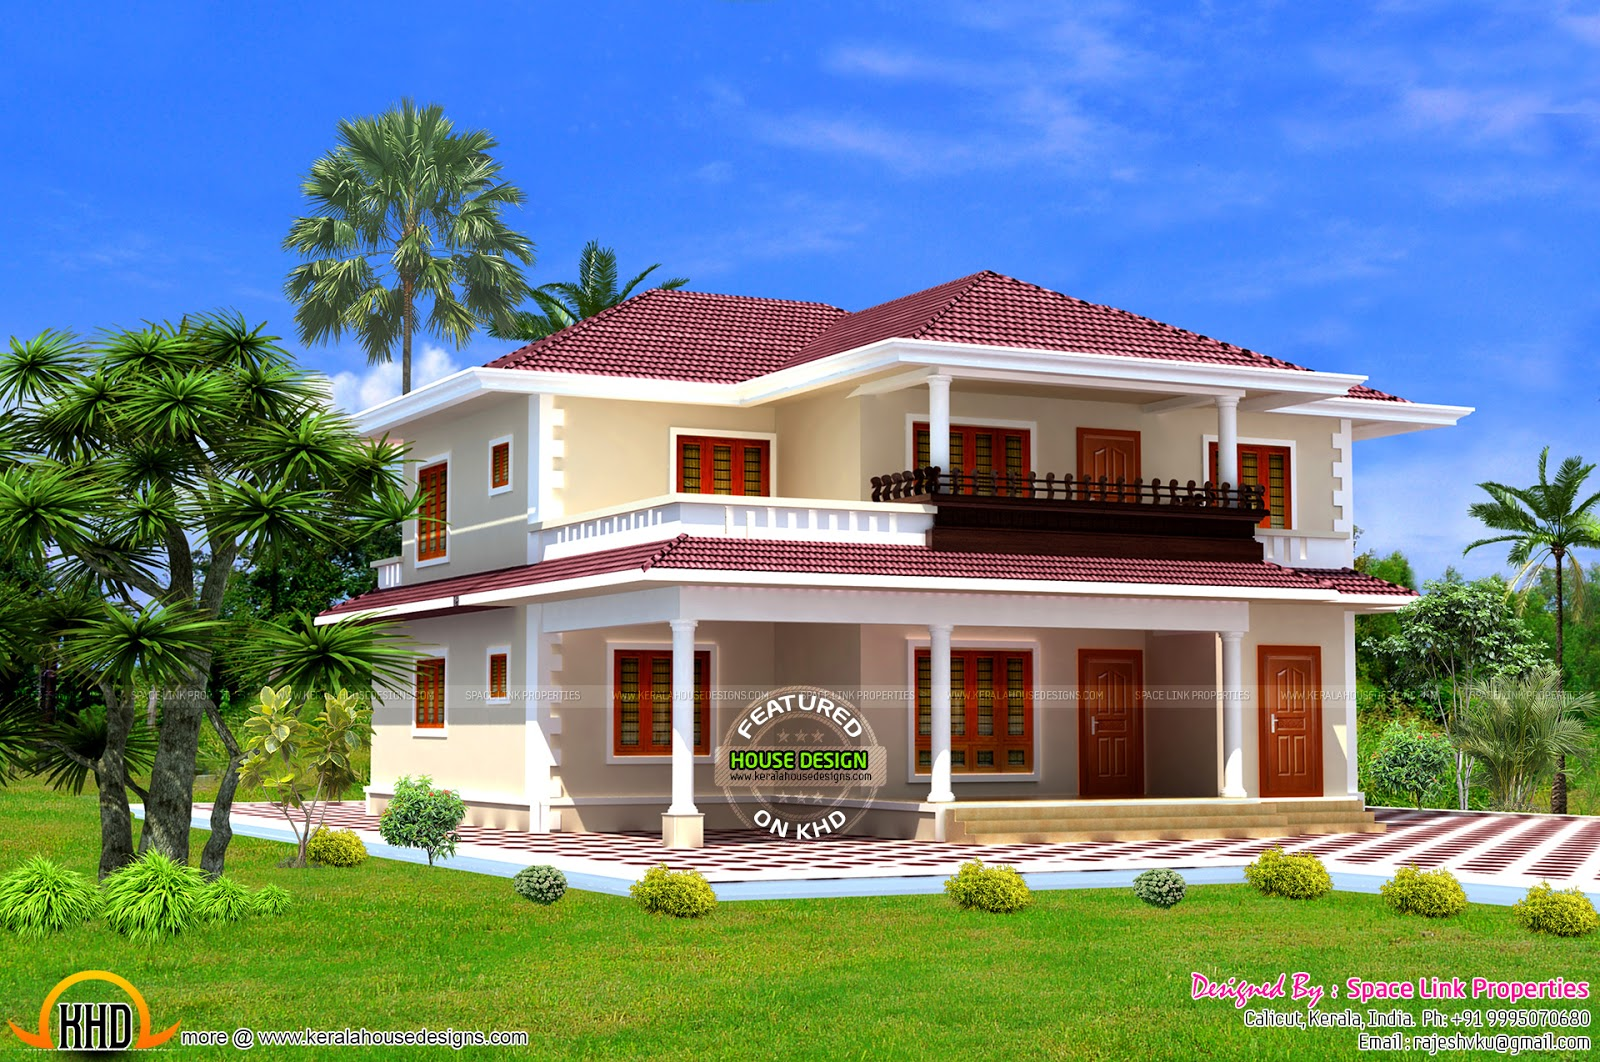 August 2015 kerala home design and floor plans Latest model houses